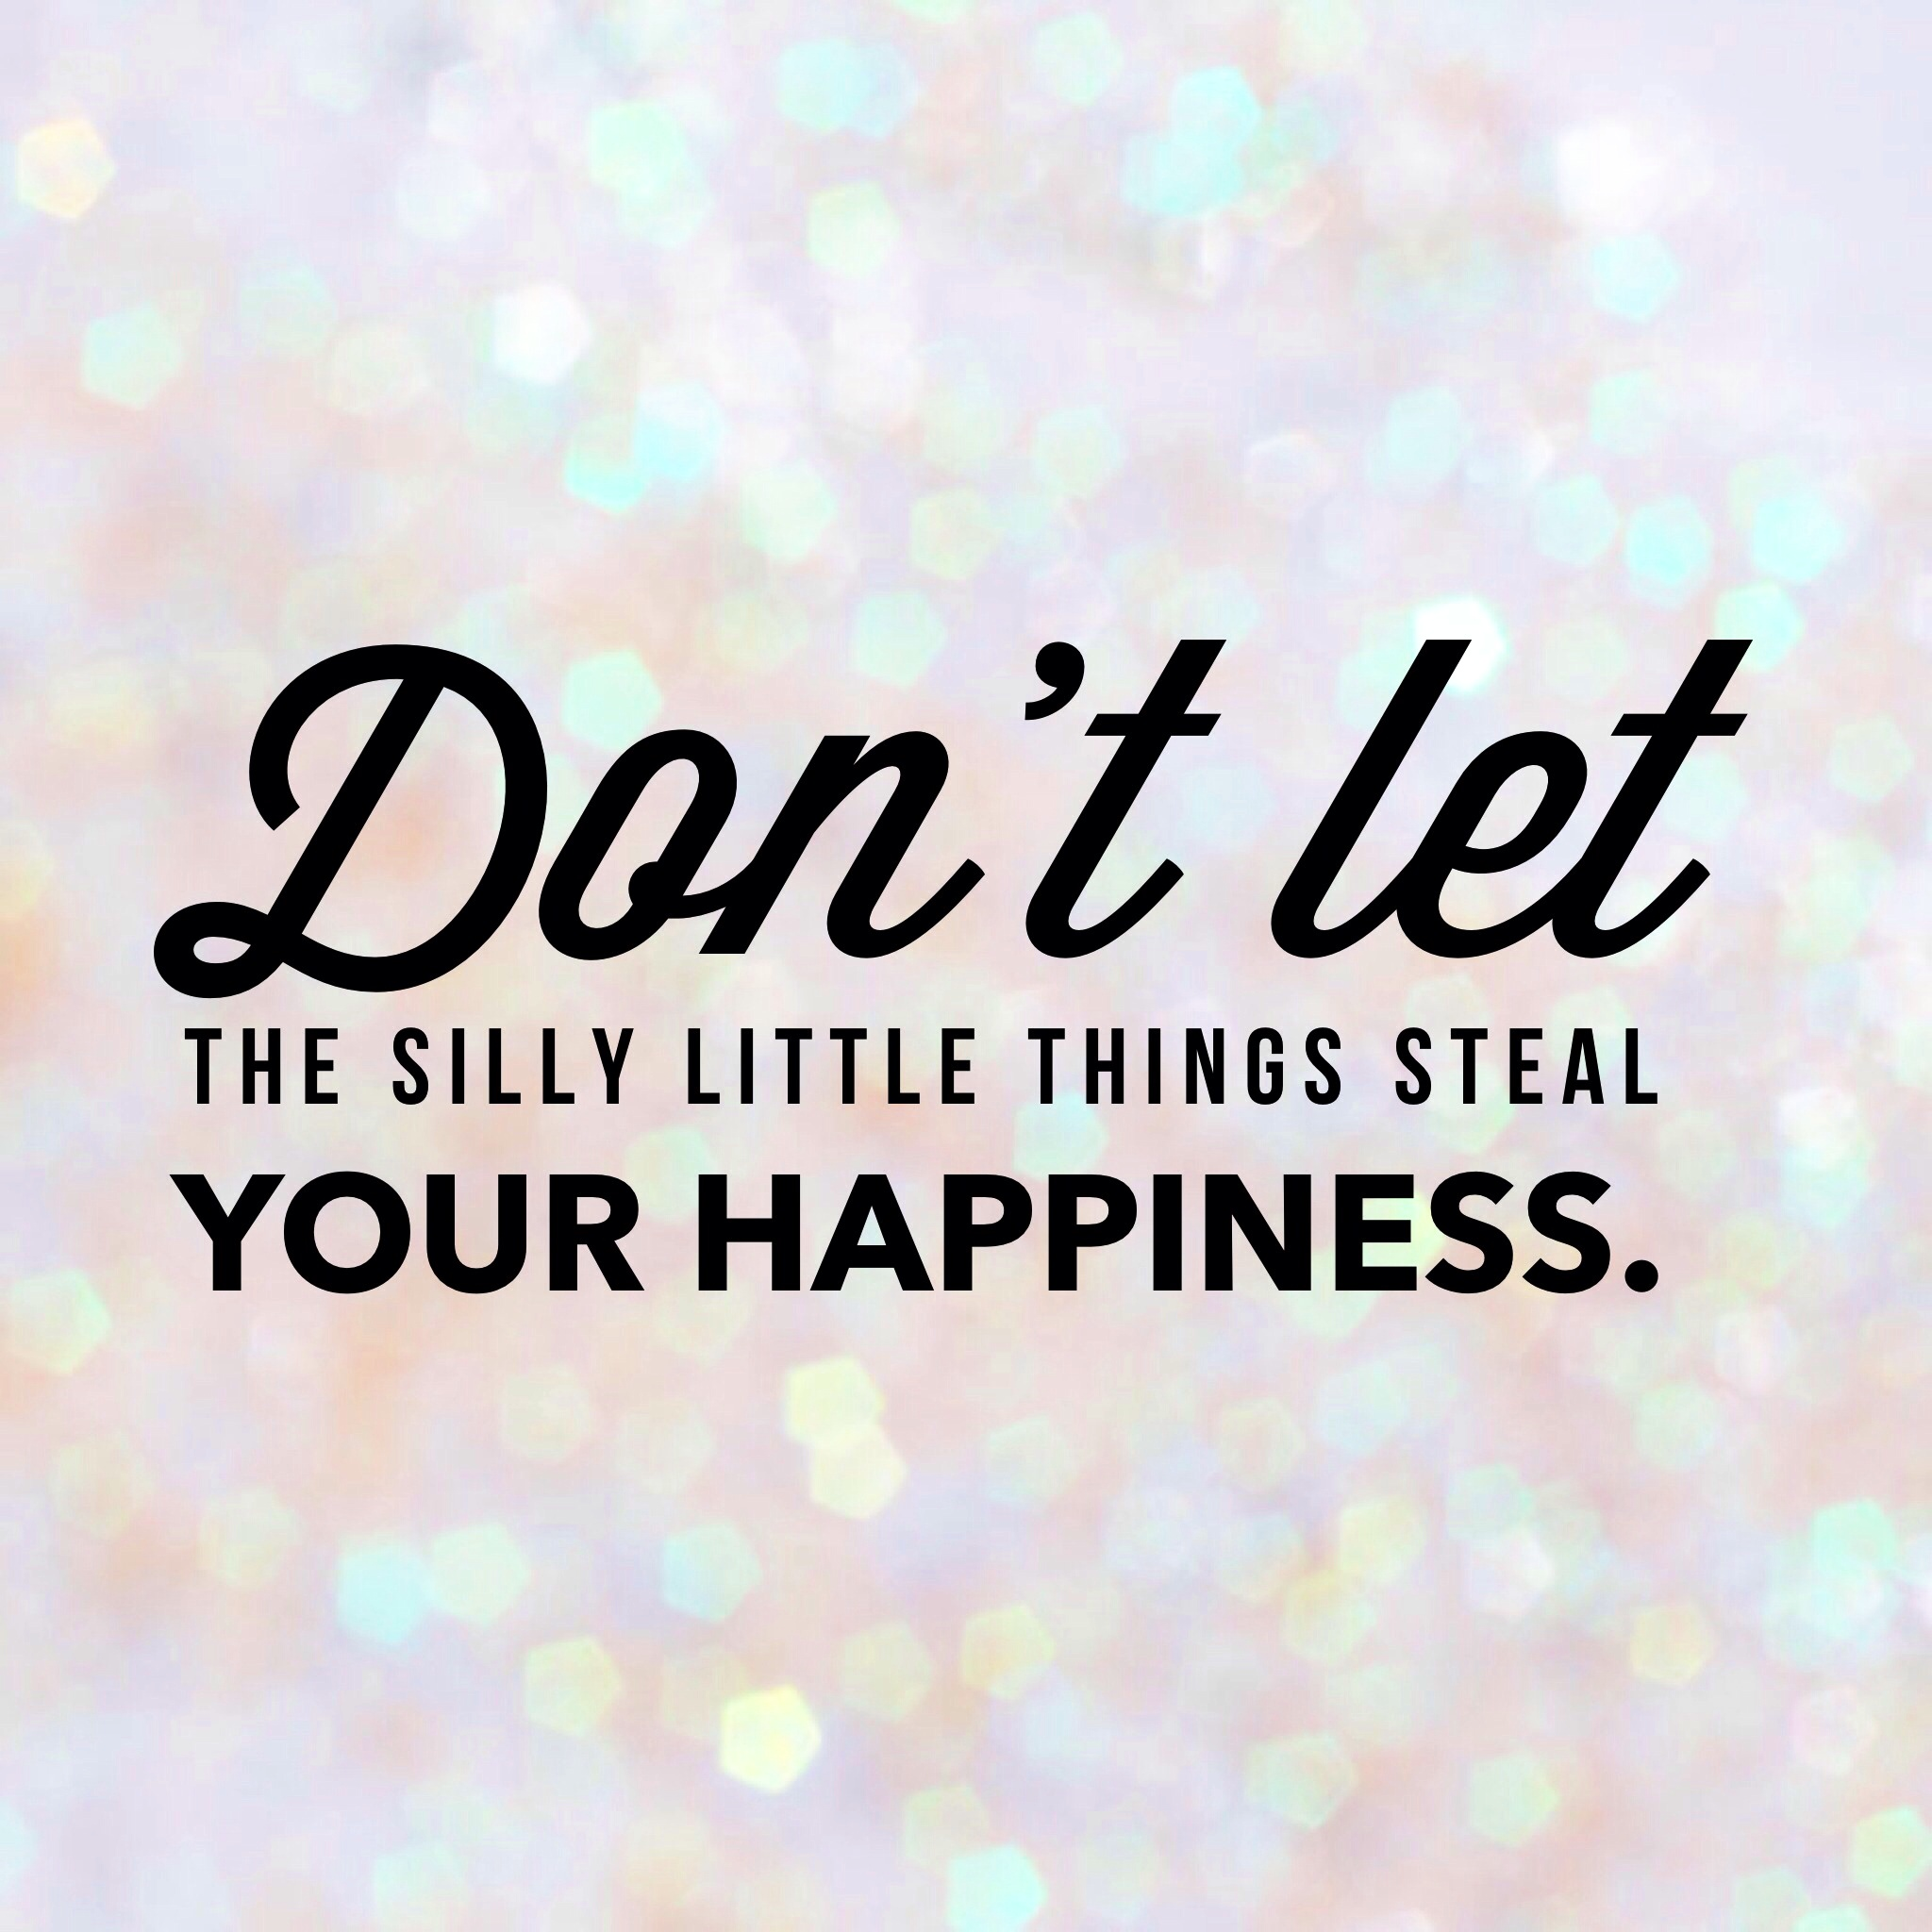 Silly People Quotes: 8 Ways To Stop The Silly Things From Stealing Your Happiness